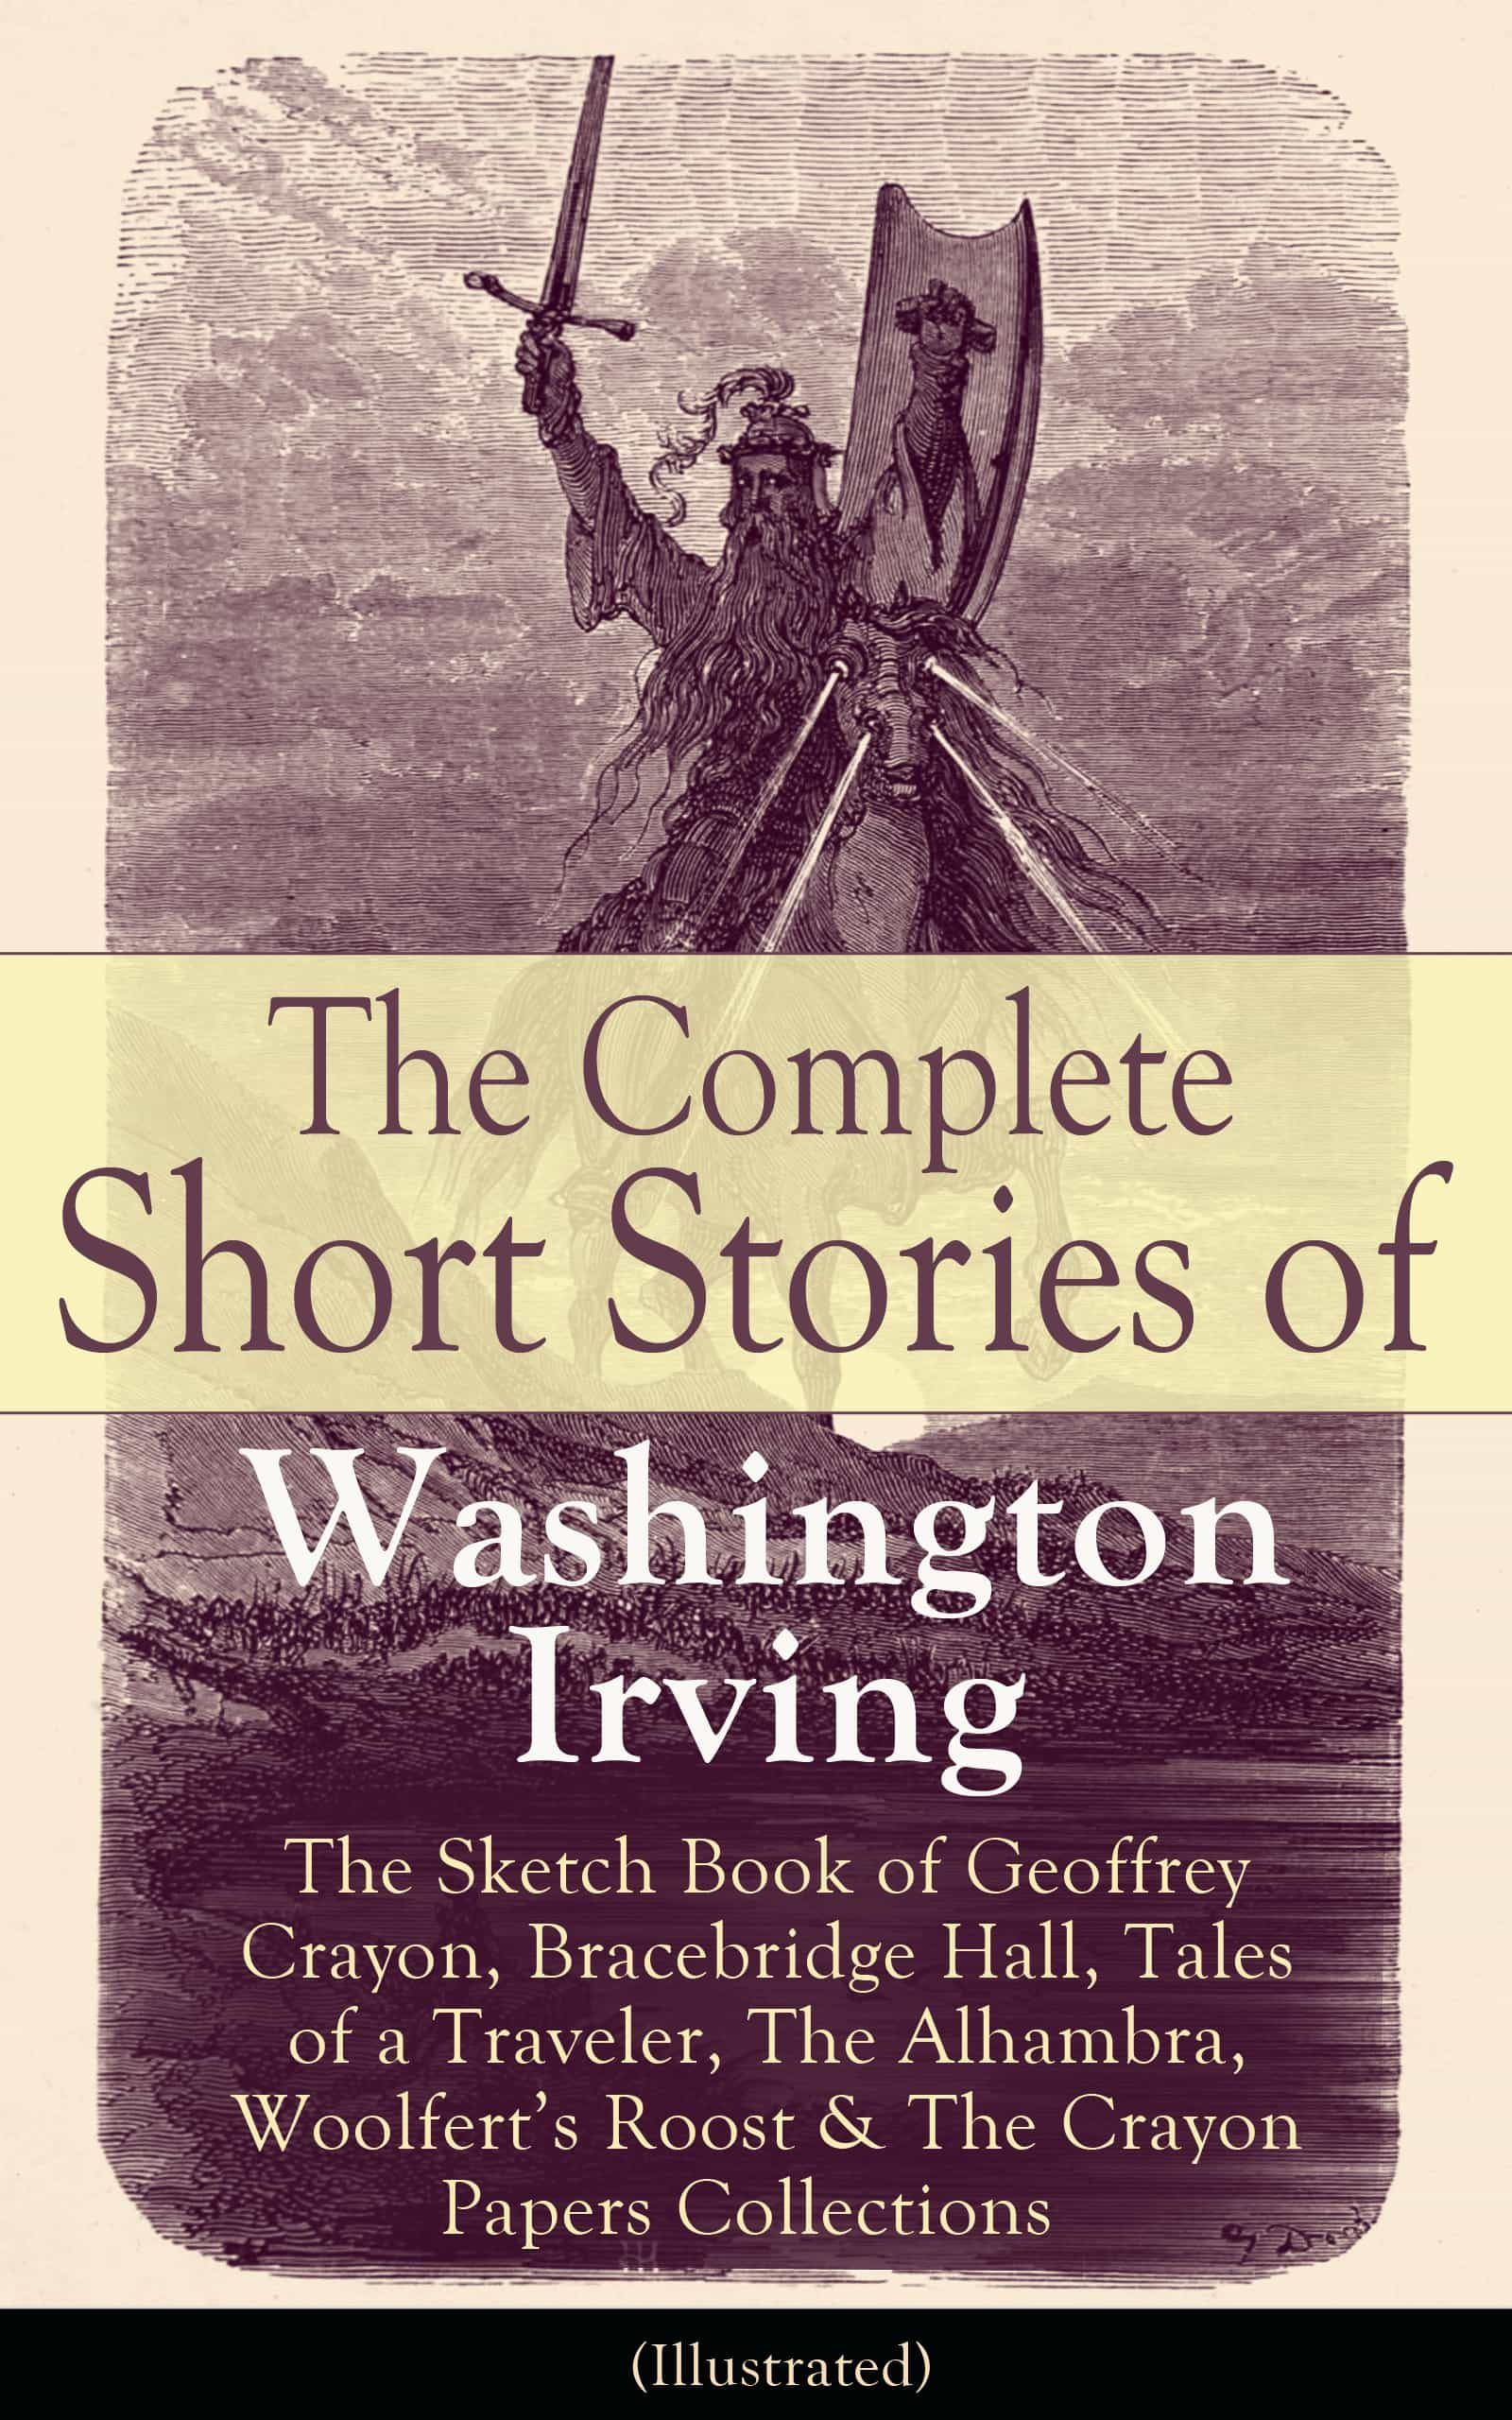 The Complete Short Stories of Washington Irving: The Sketch Book of Geoffrey Crayon, Bracebridge Hall, Tales of a Traveler, The Alhambra, Woolfert